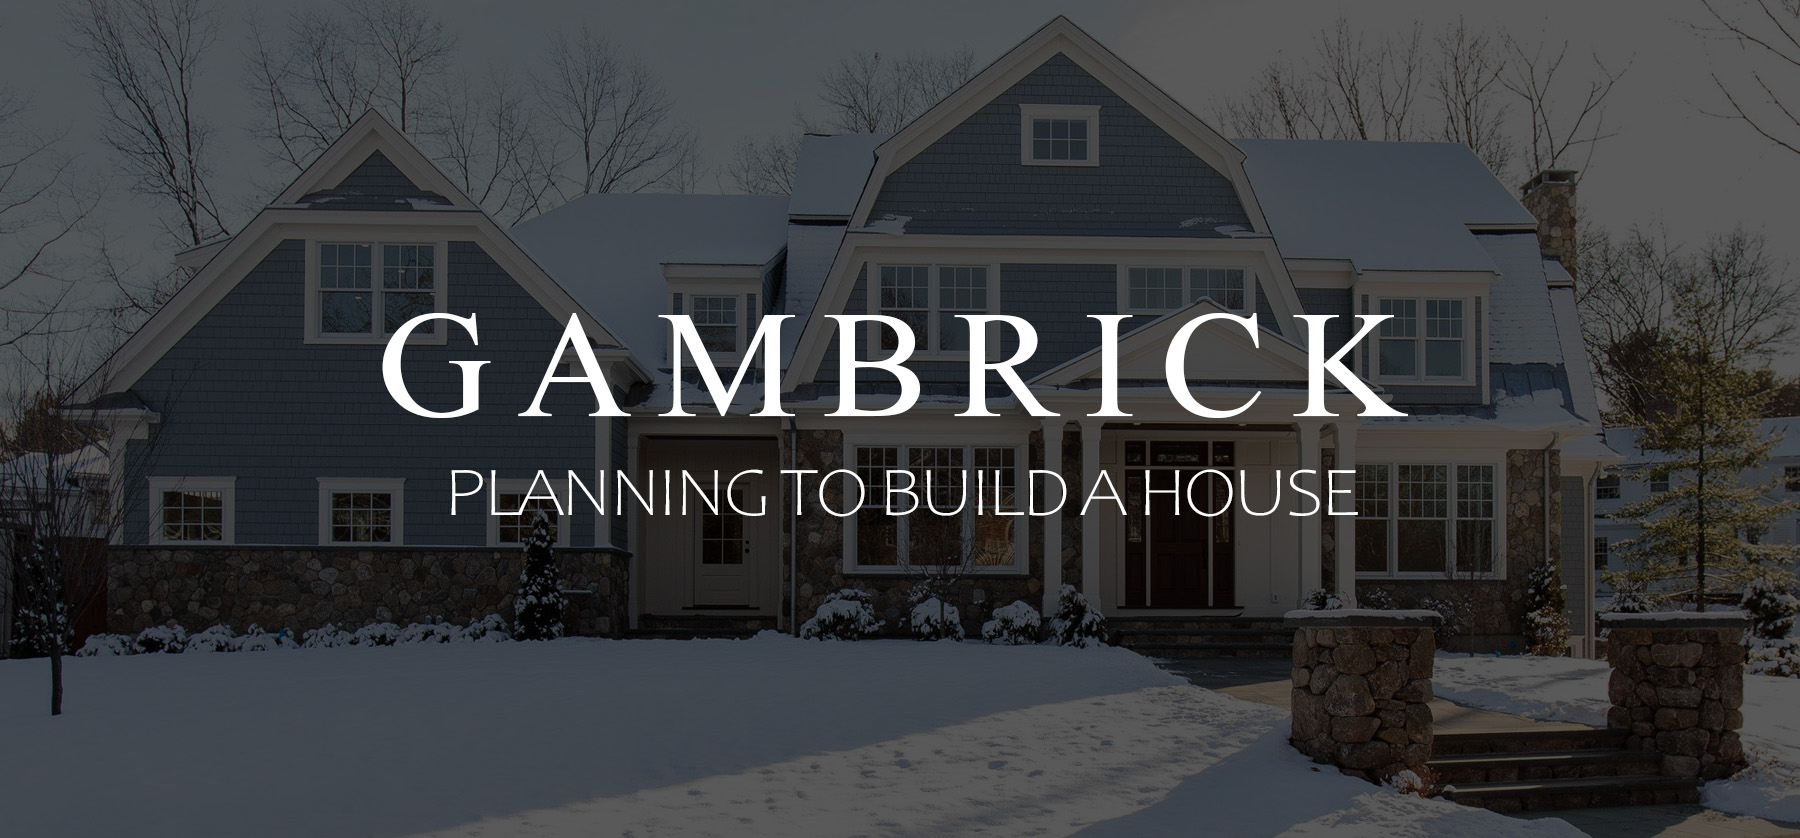 planning to build a house banner 1